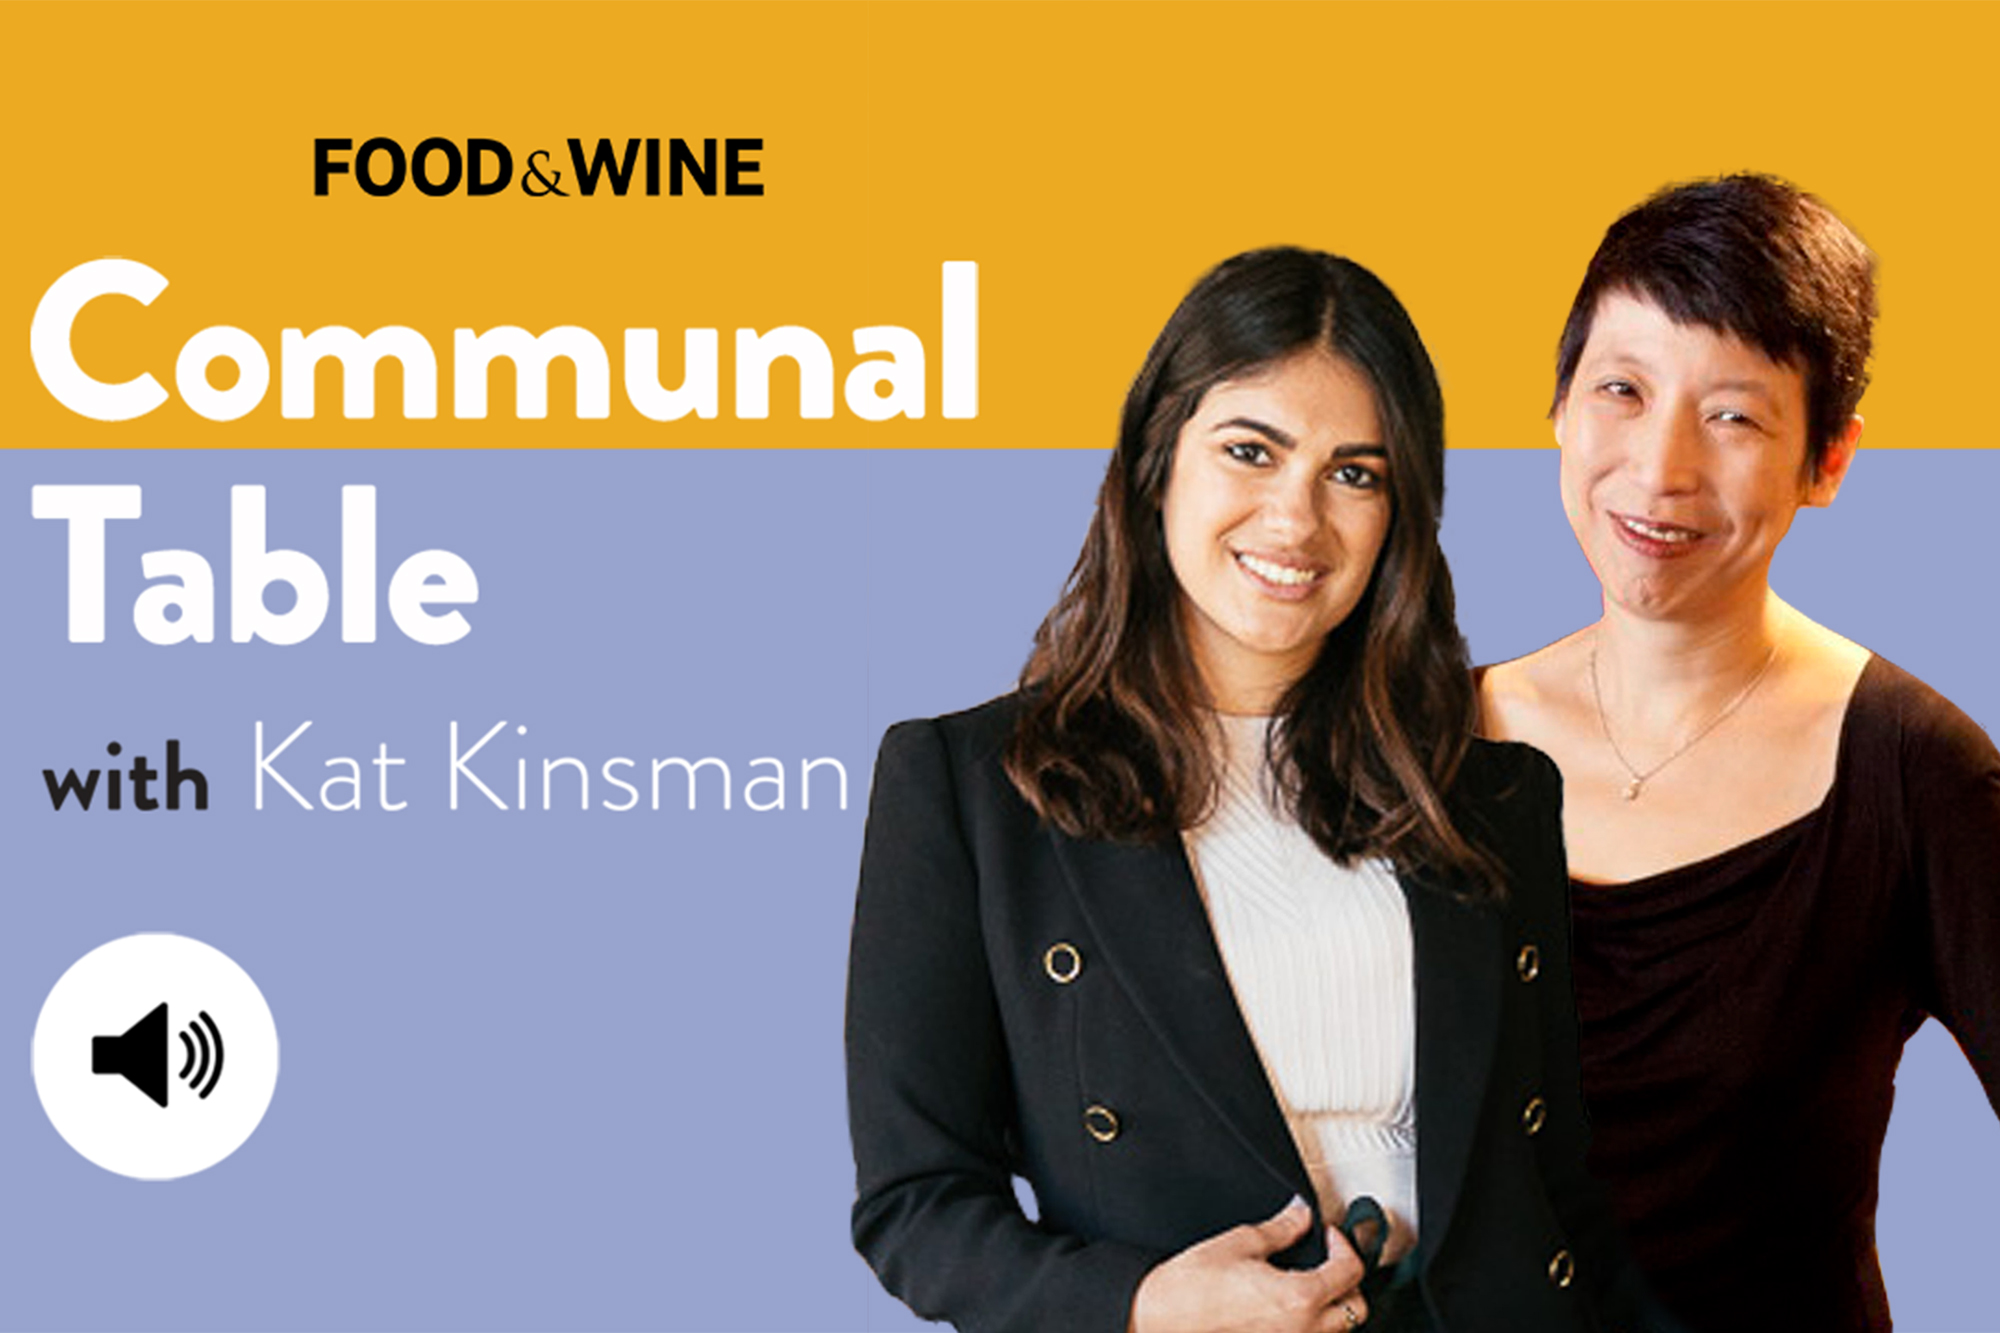 Communal Table with Kat Kinsman featuring Gia Vecchio and Ellen Yin